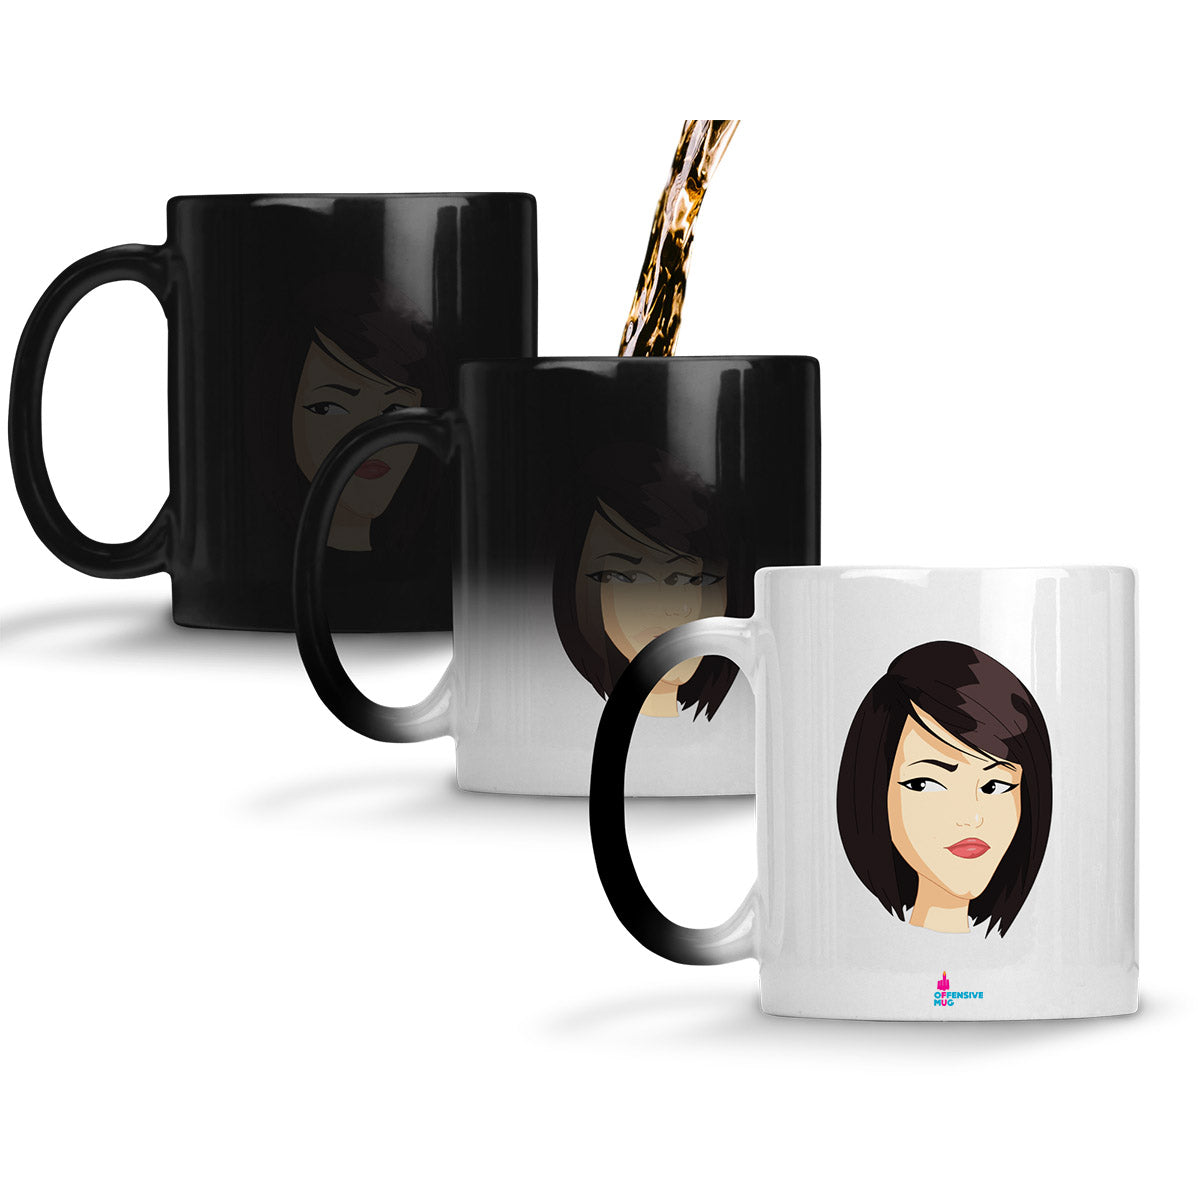 Soo Magic Mug - Offensive Mug